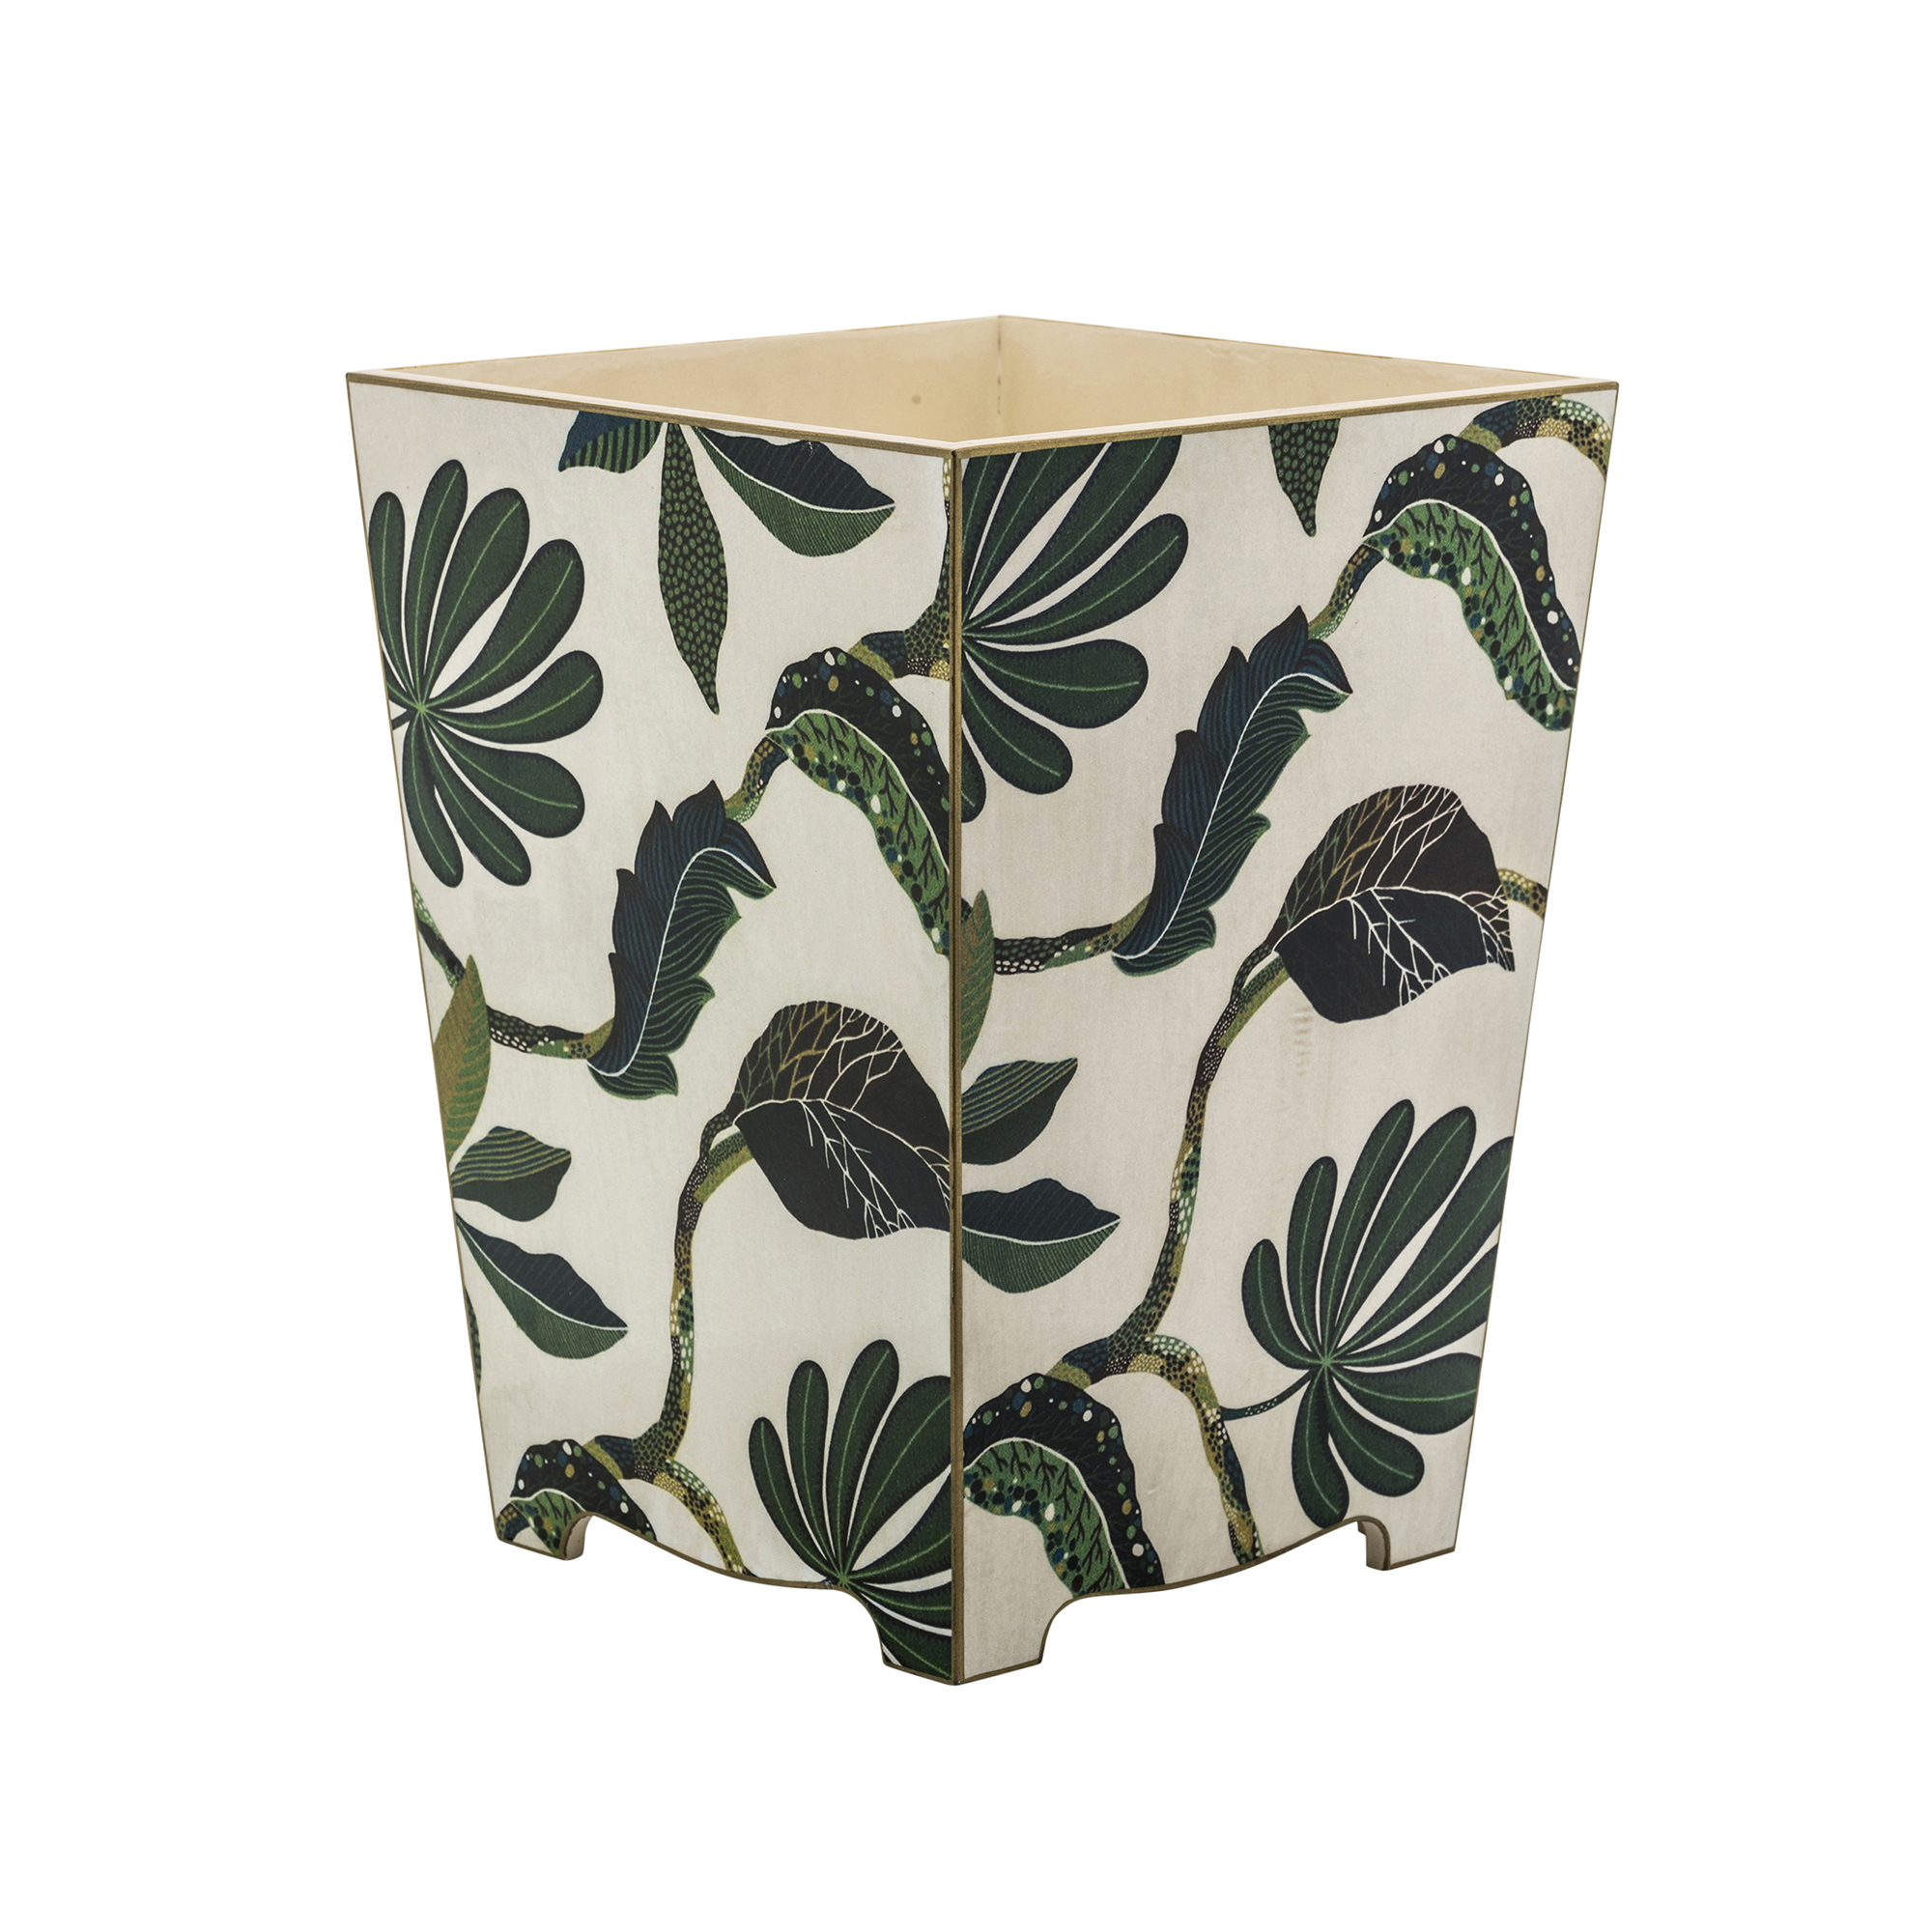 Green Leaf Wood Waste Paper Bin Basket